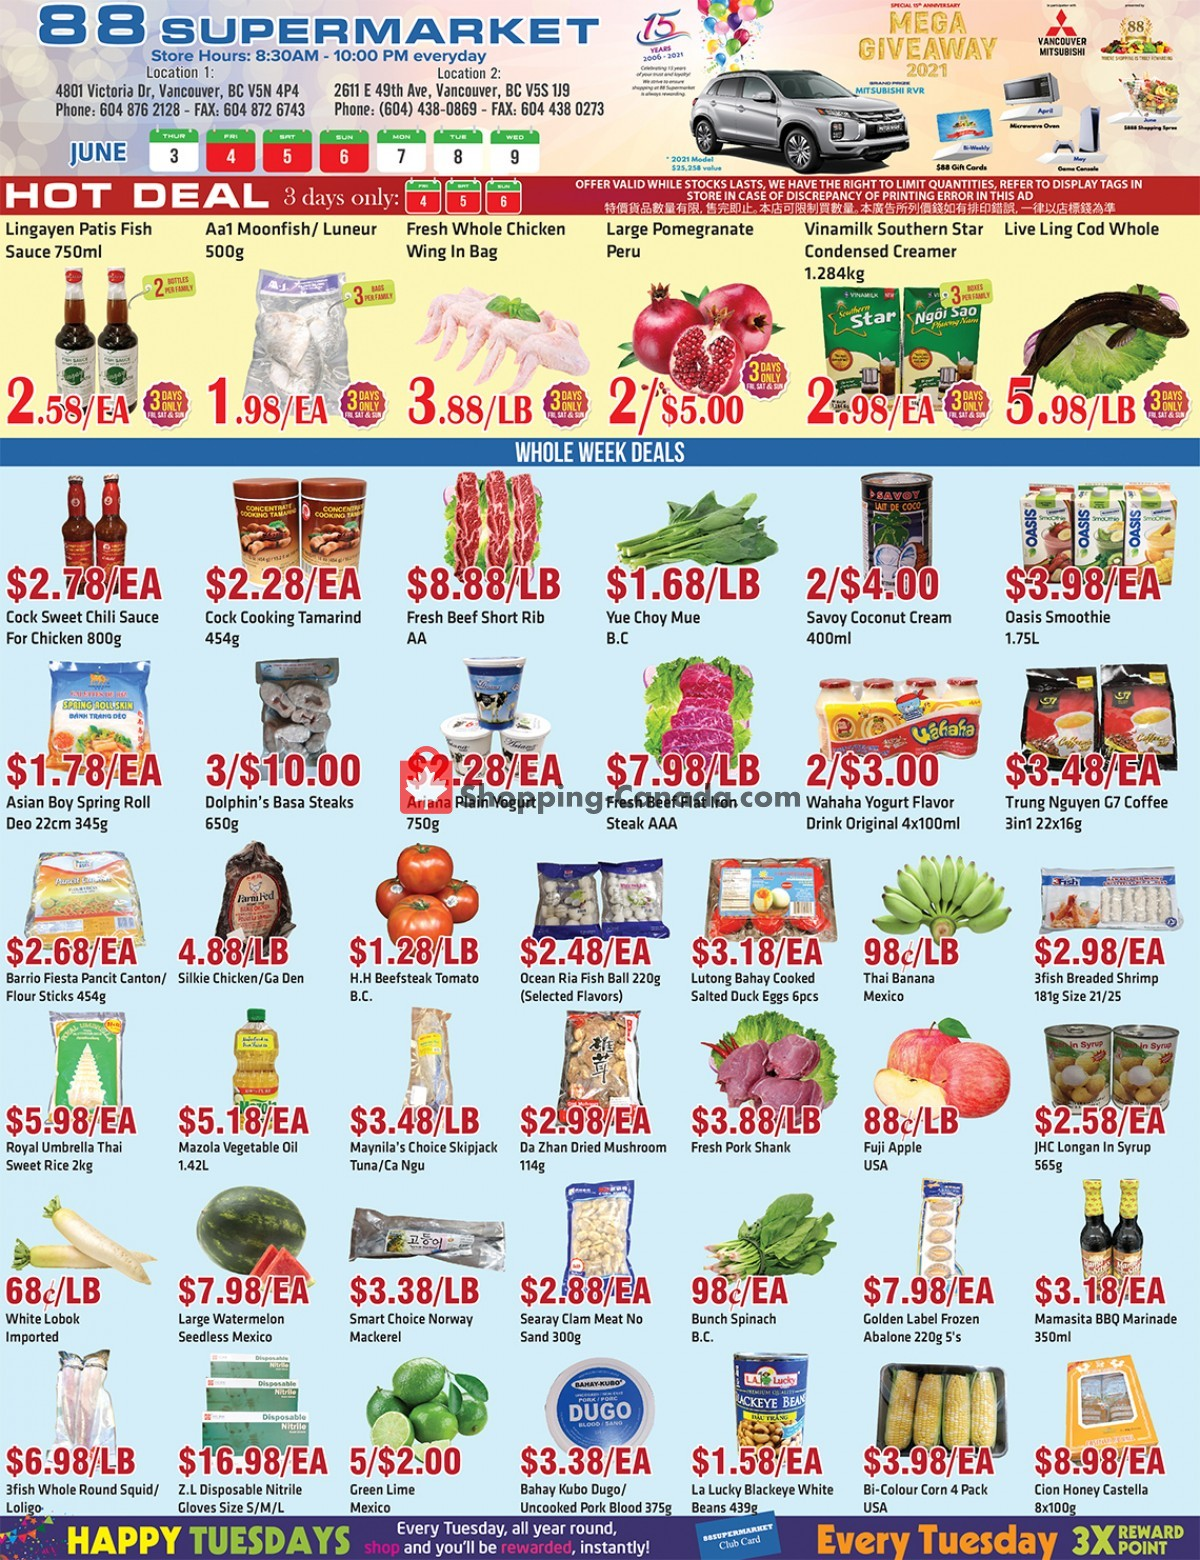 Flyer 88 Supermarket Canada - from Thursday June 3, 2021 to Wednesday June 9, 2021